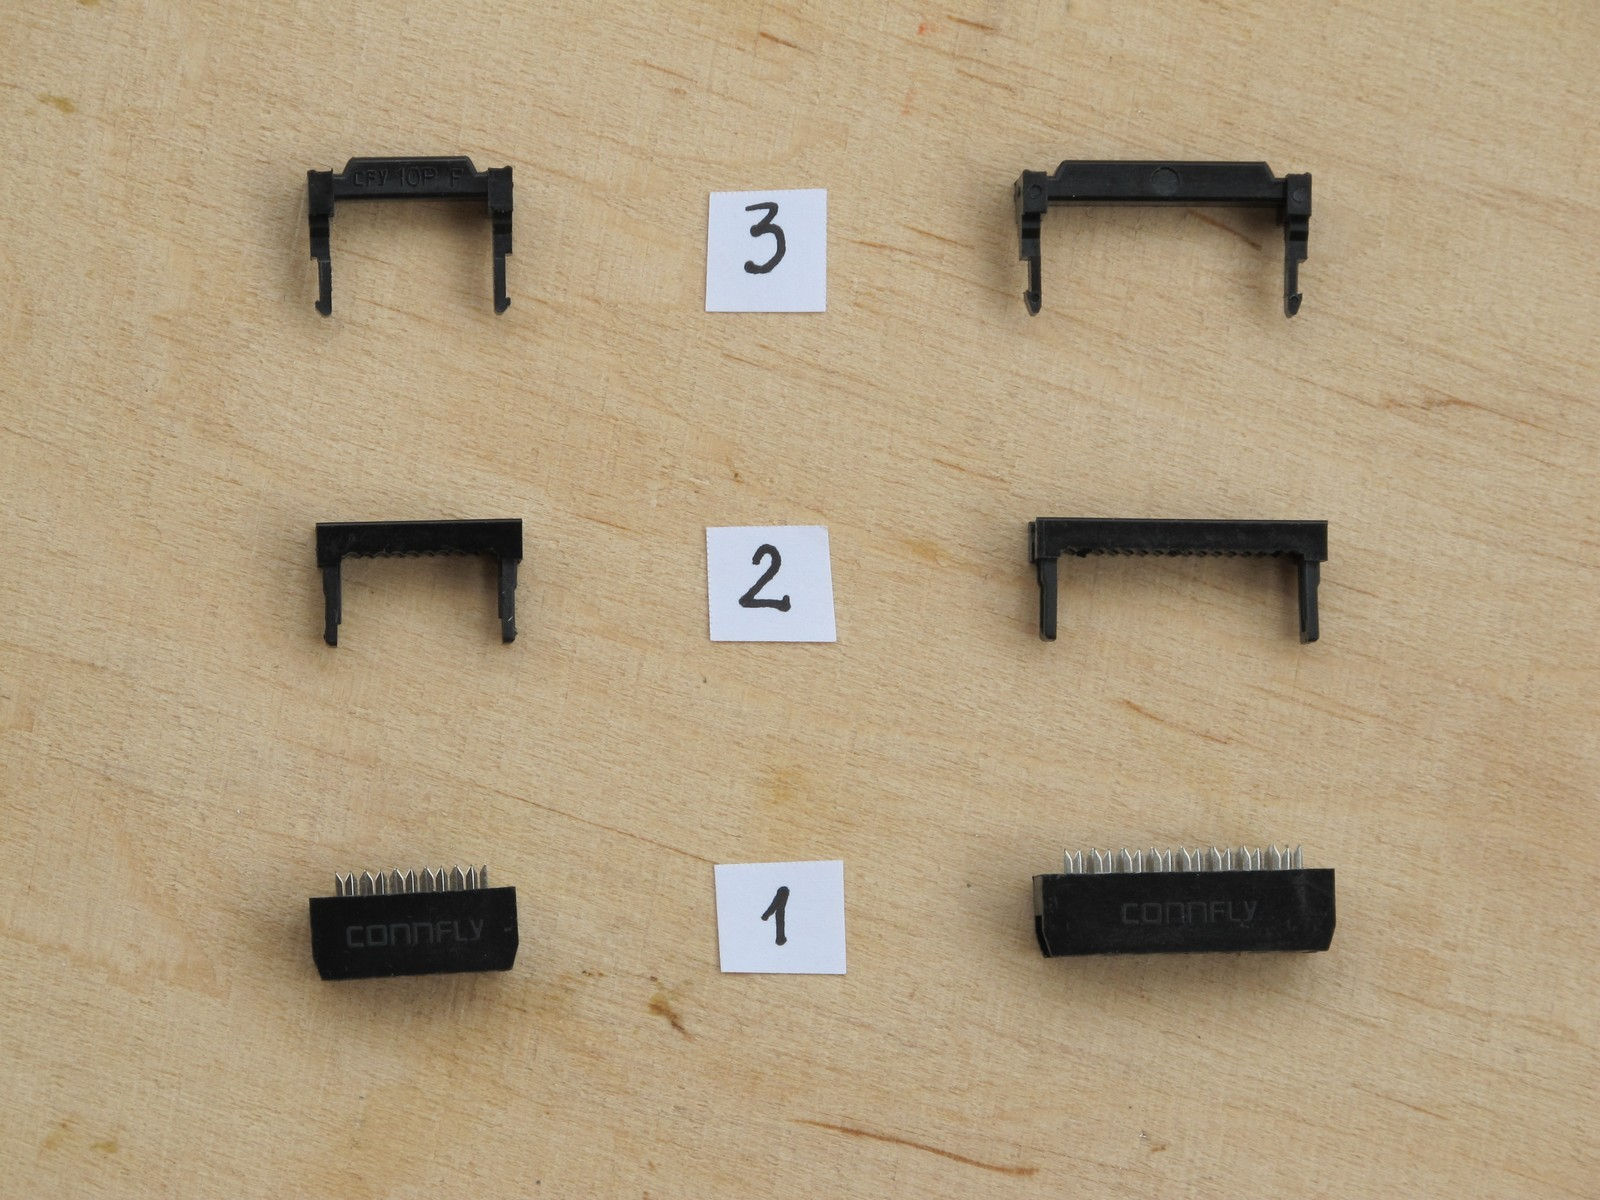 IDC plugs disassembled